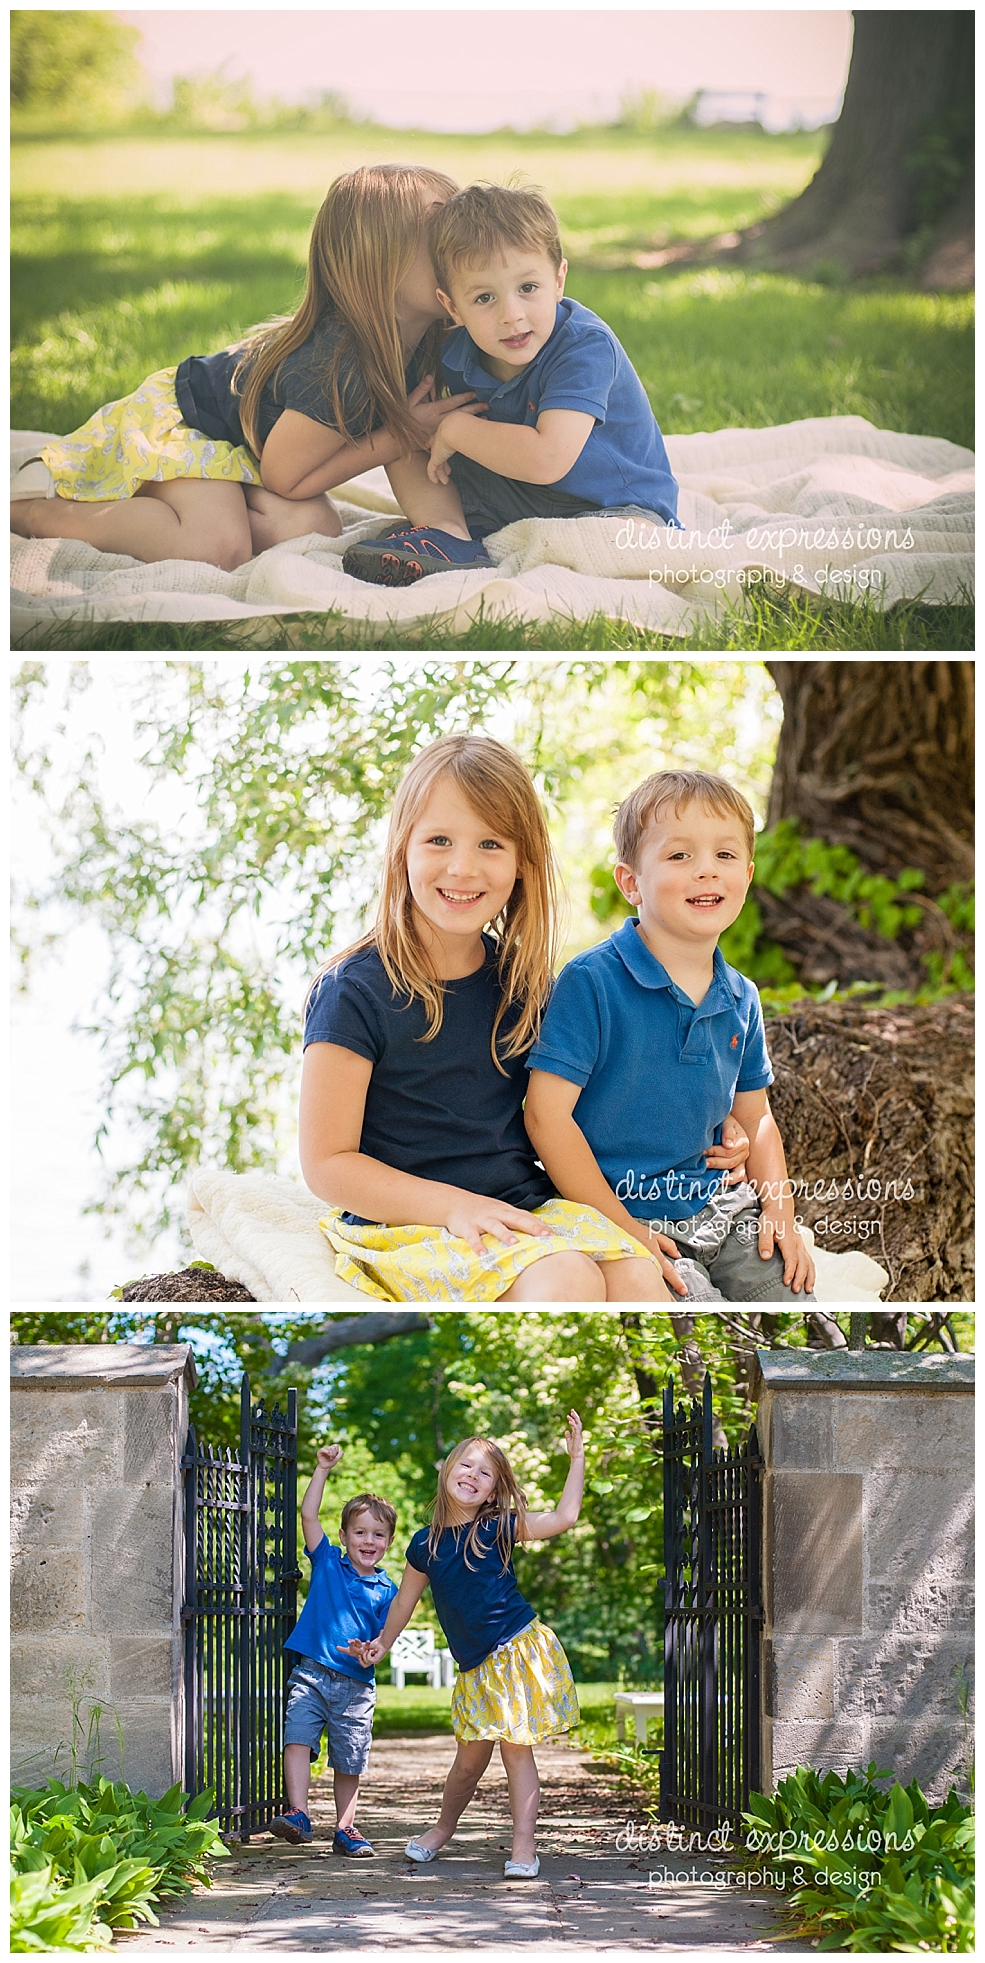 brother and sister siblings photography session outdoors in Metro Detroit